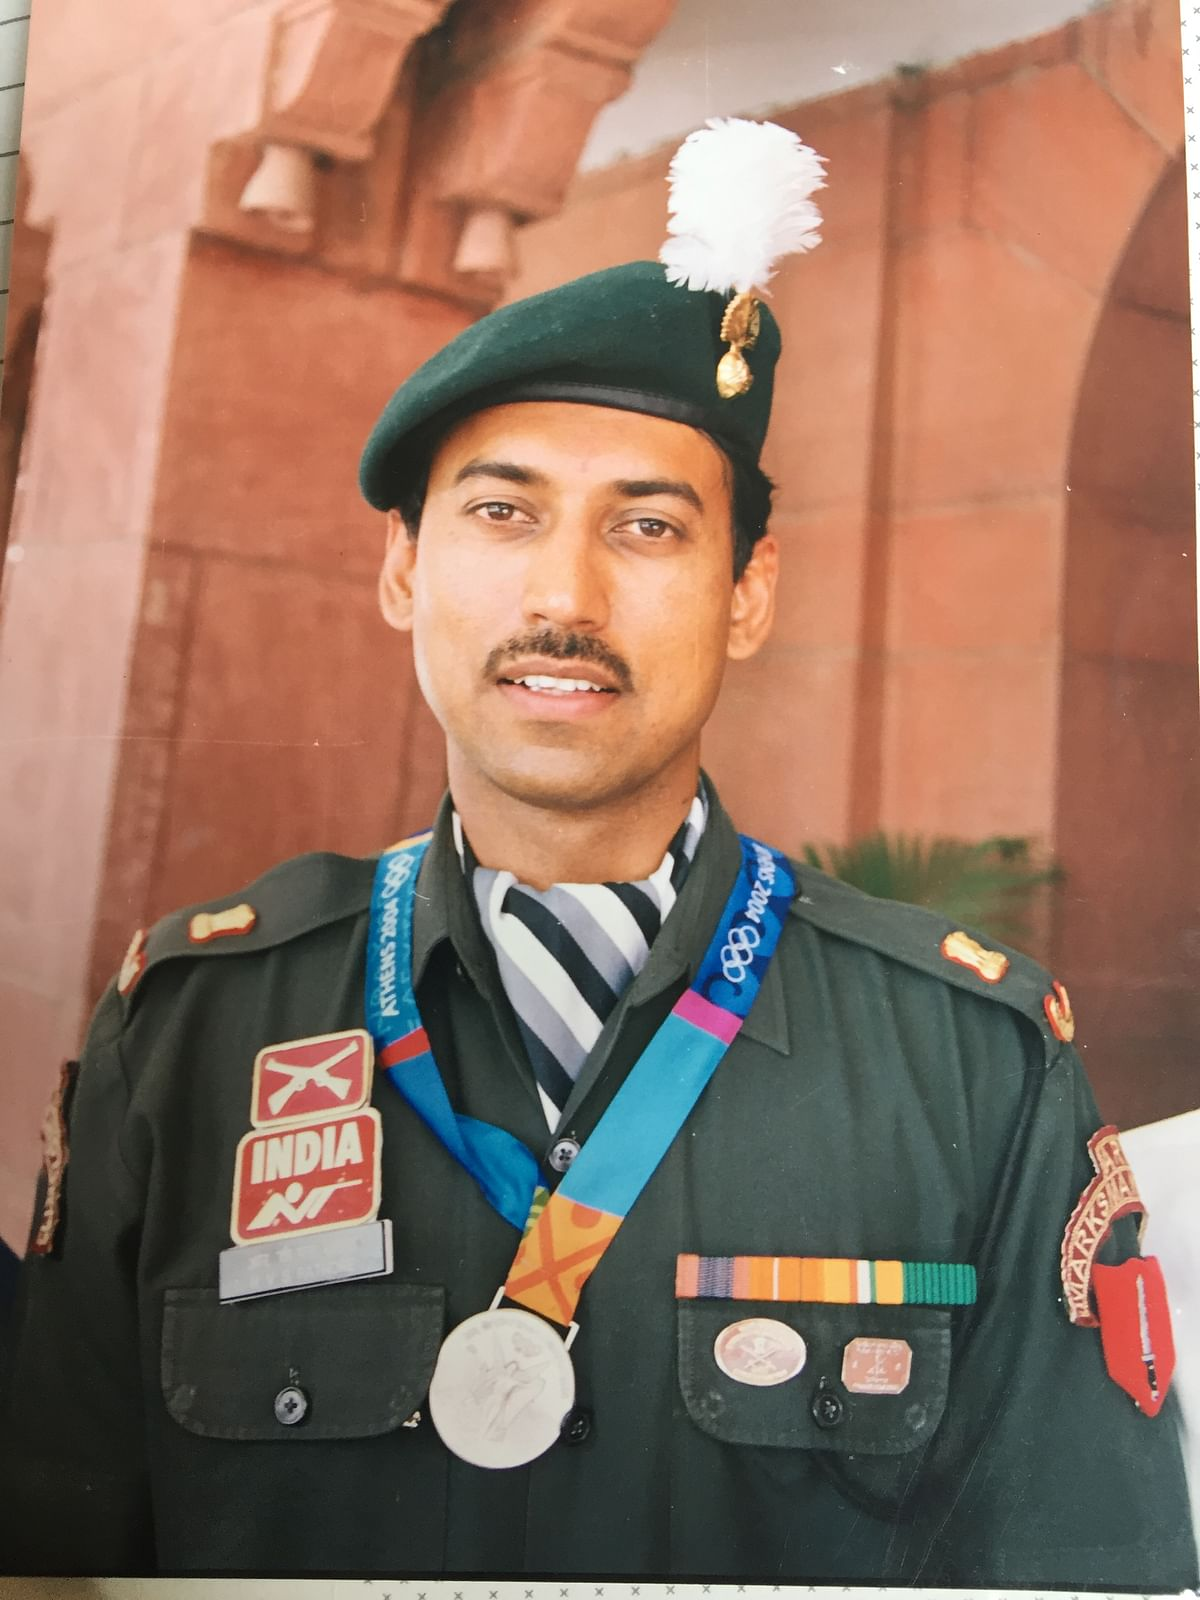 Rathore's silver medal at the Athens Olympics in 2004 was historical.